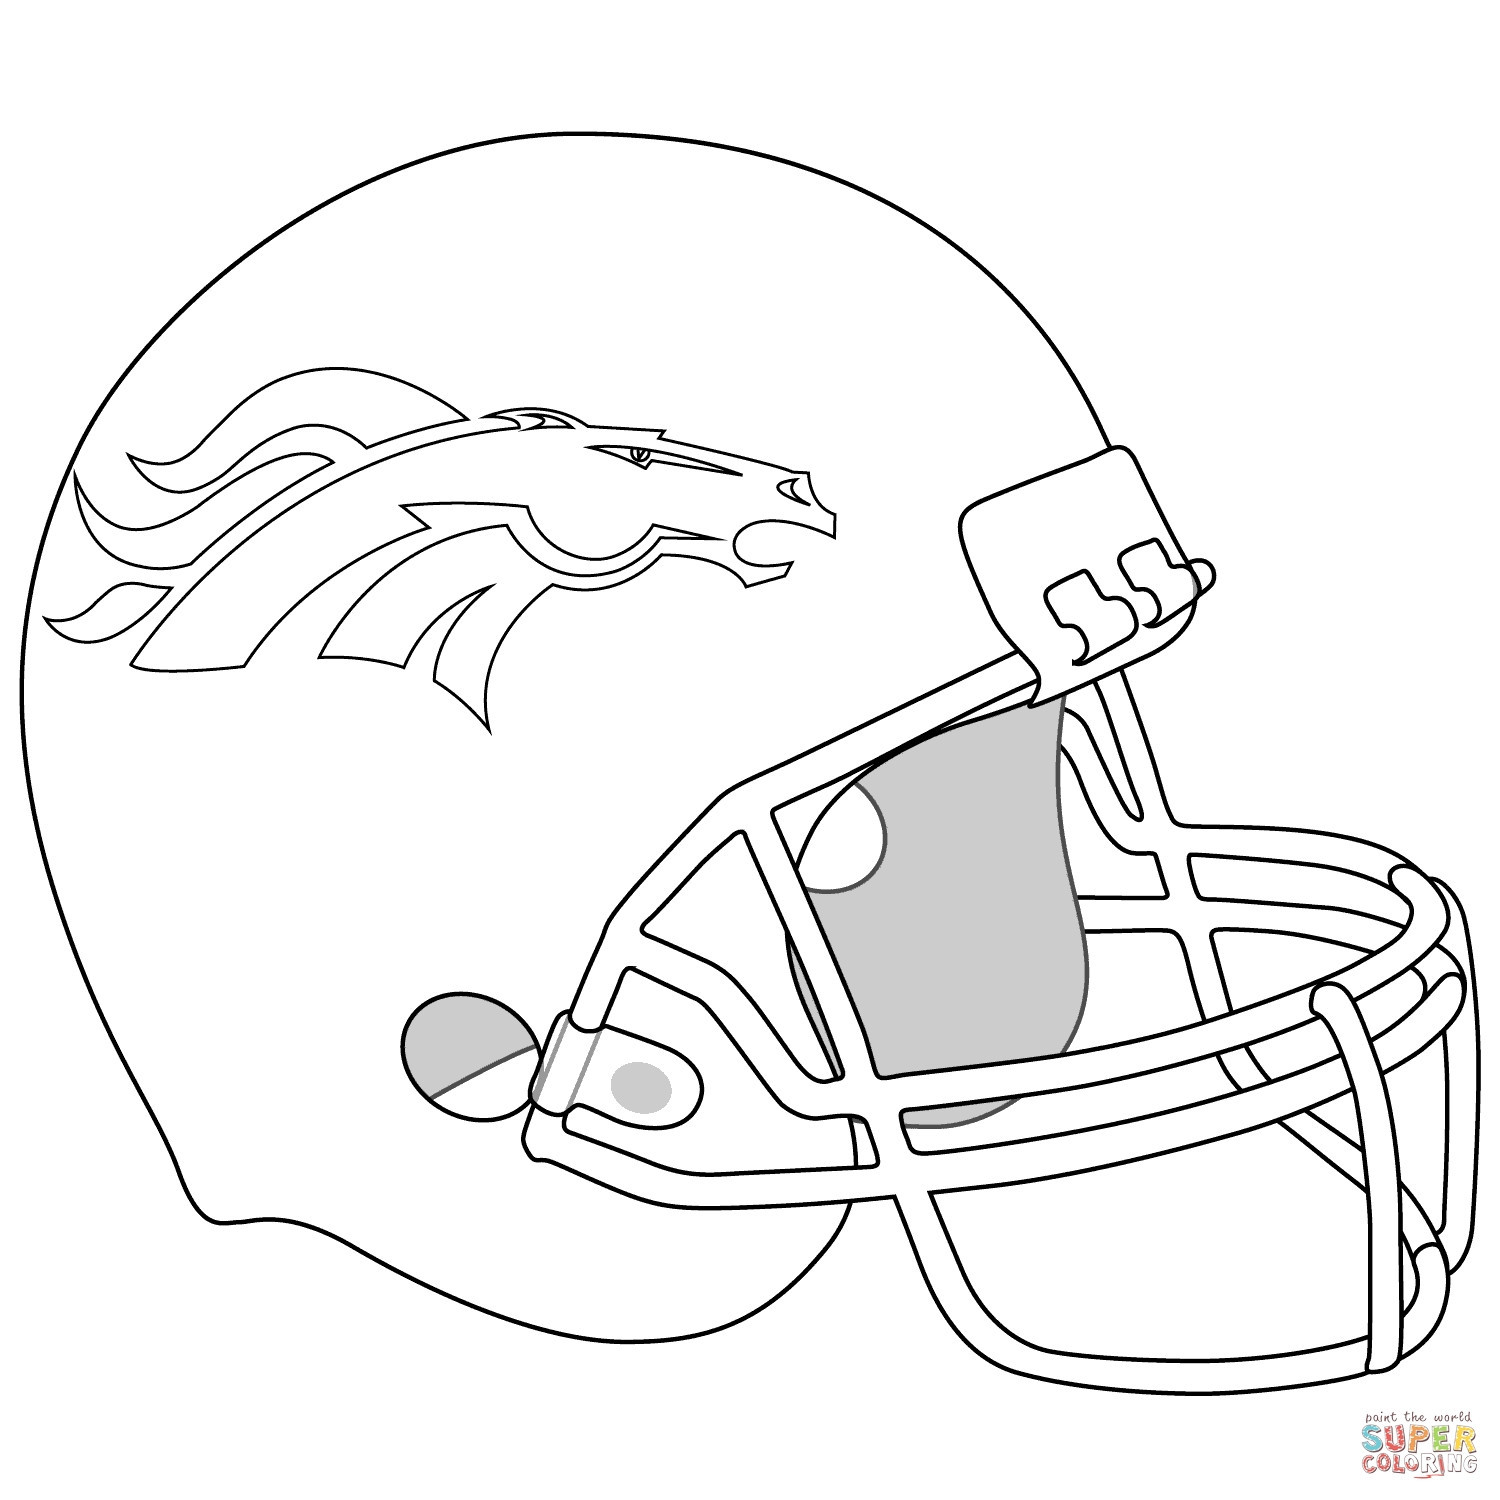 1500x1500 Pittsburgh Steelers Logo Coloring Page Free Printable Pages